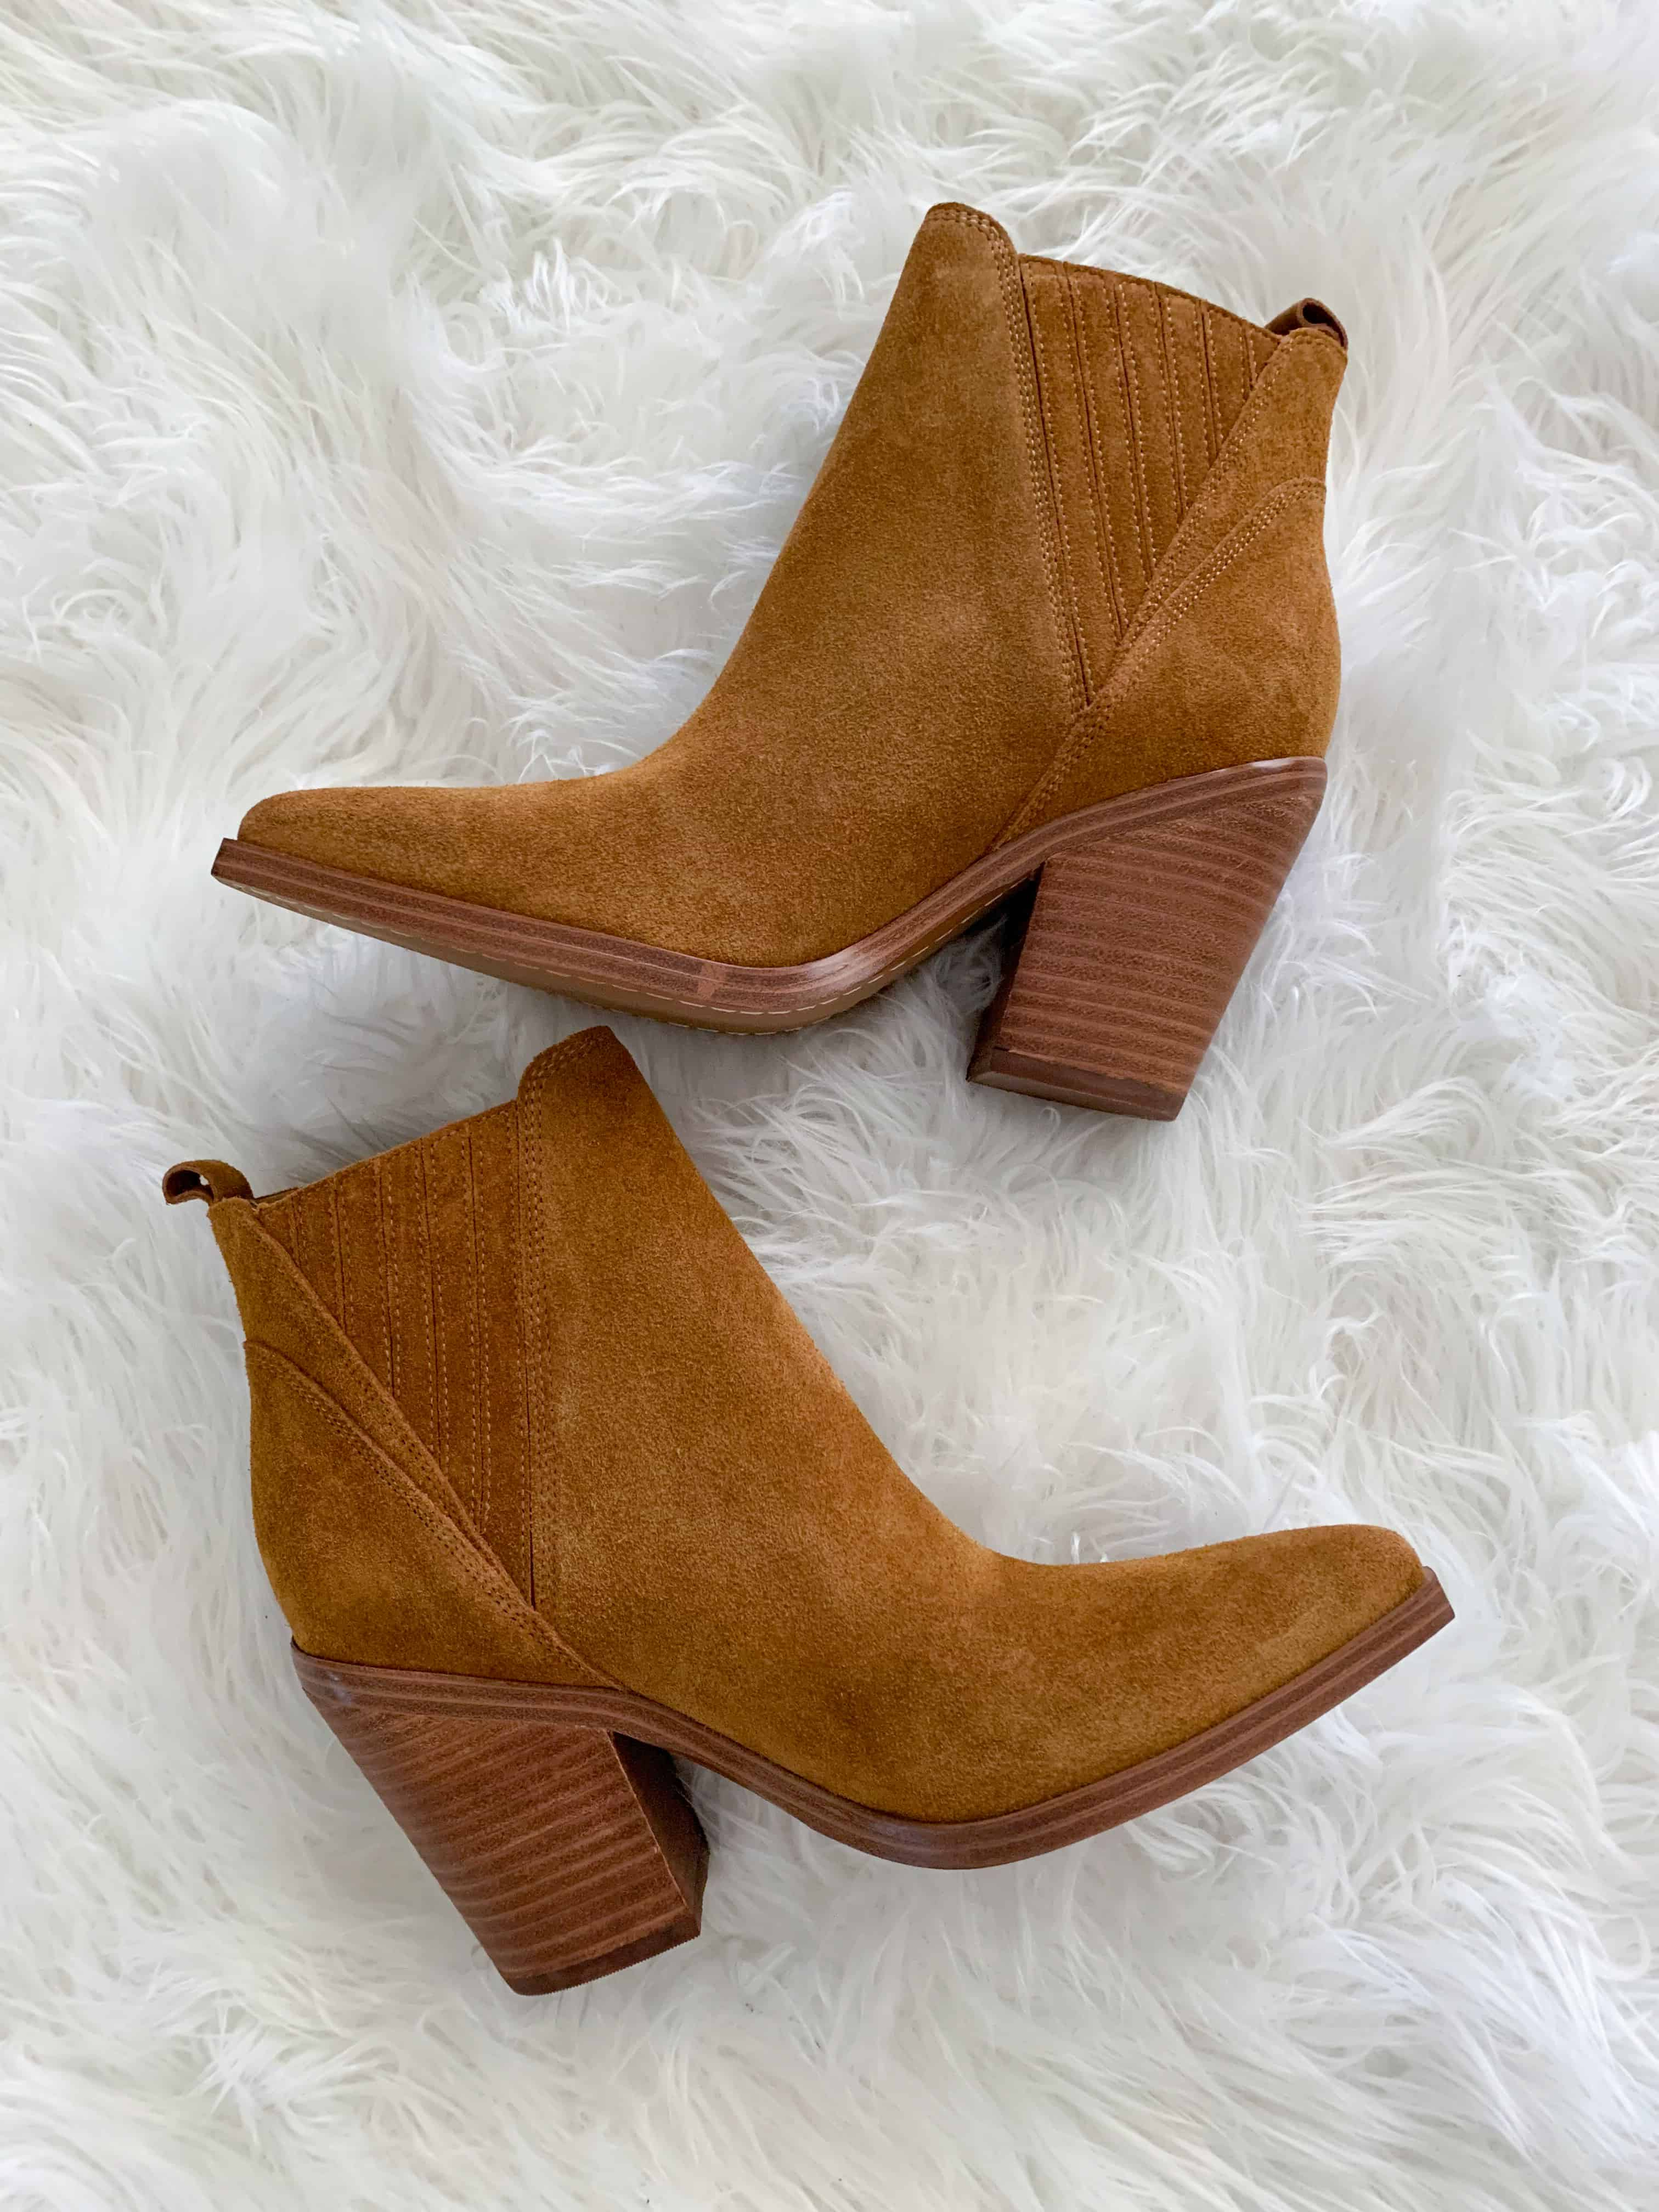 Katies Bliss Marc Fisher Gardi Pointed Toe Bootie